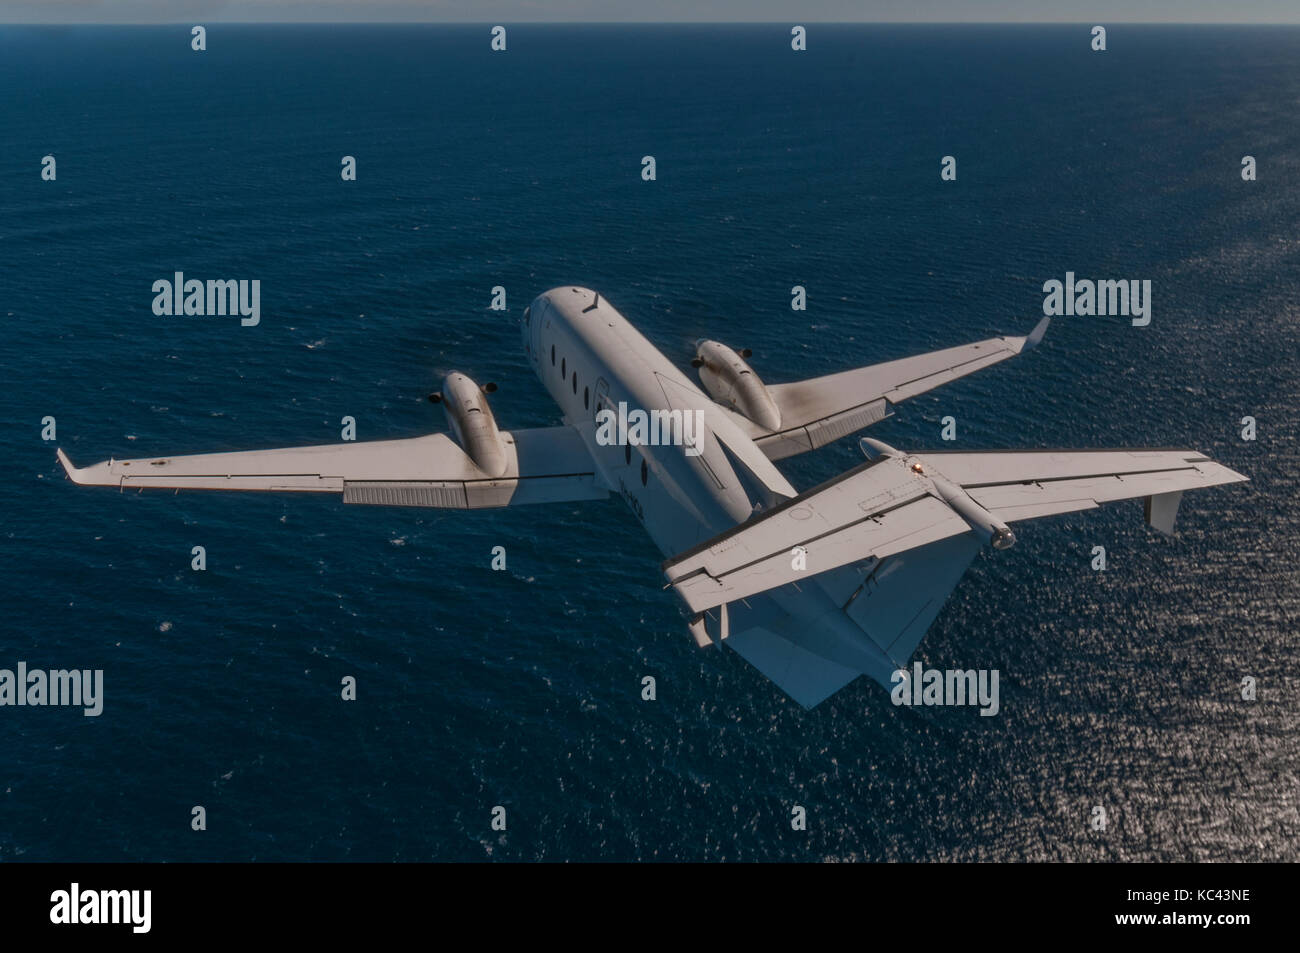 An air-to-air, rear end portrait of a Raytheon Beechcraft B1900D aircraft in flight over the ocean. - Stock Image